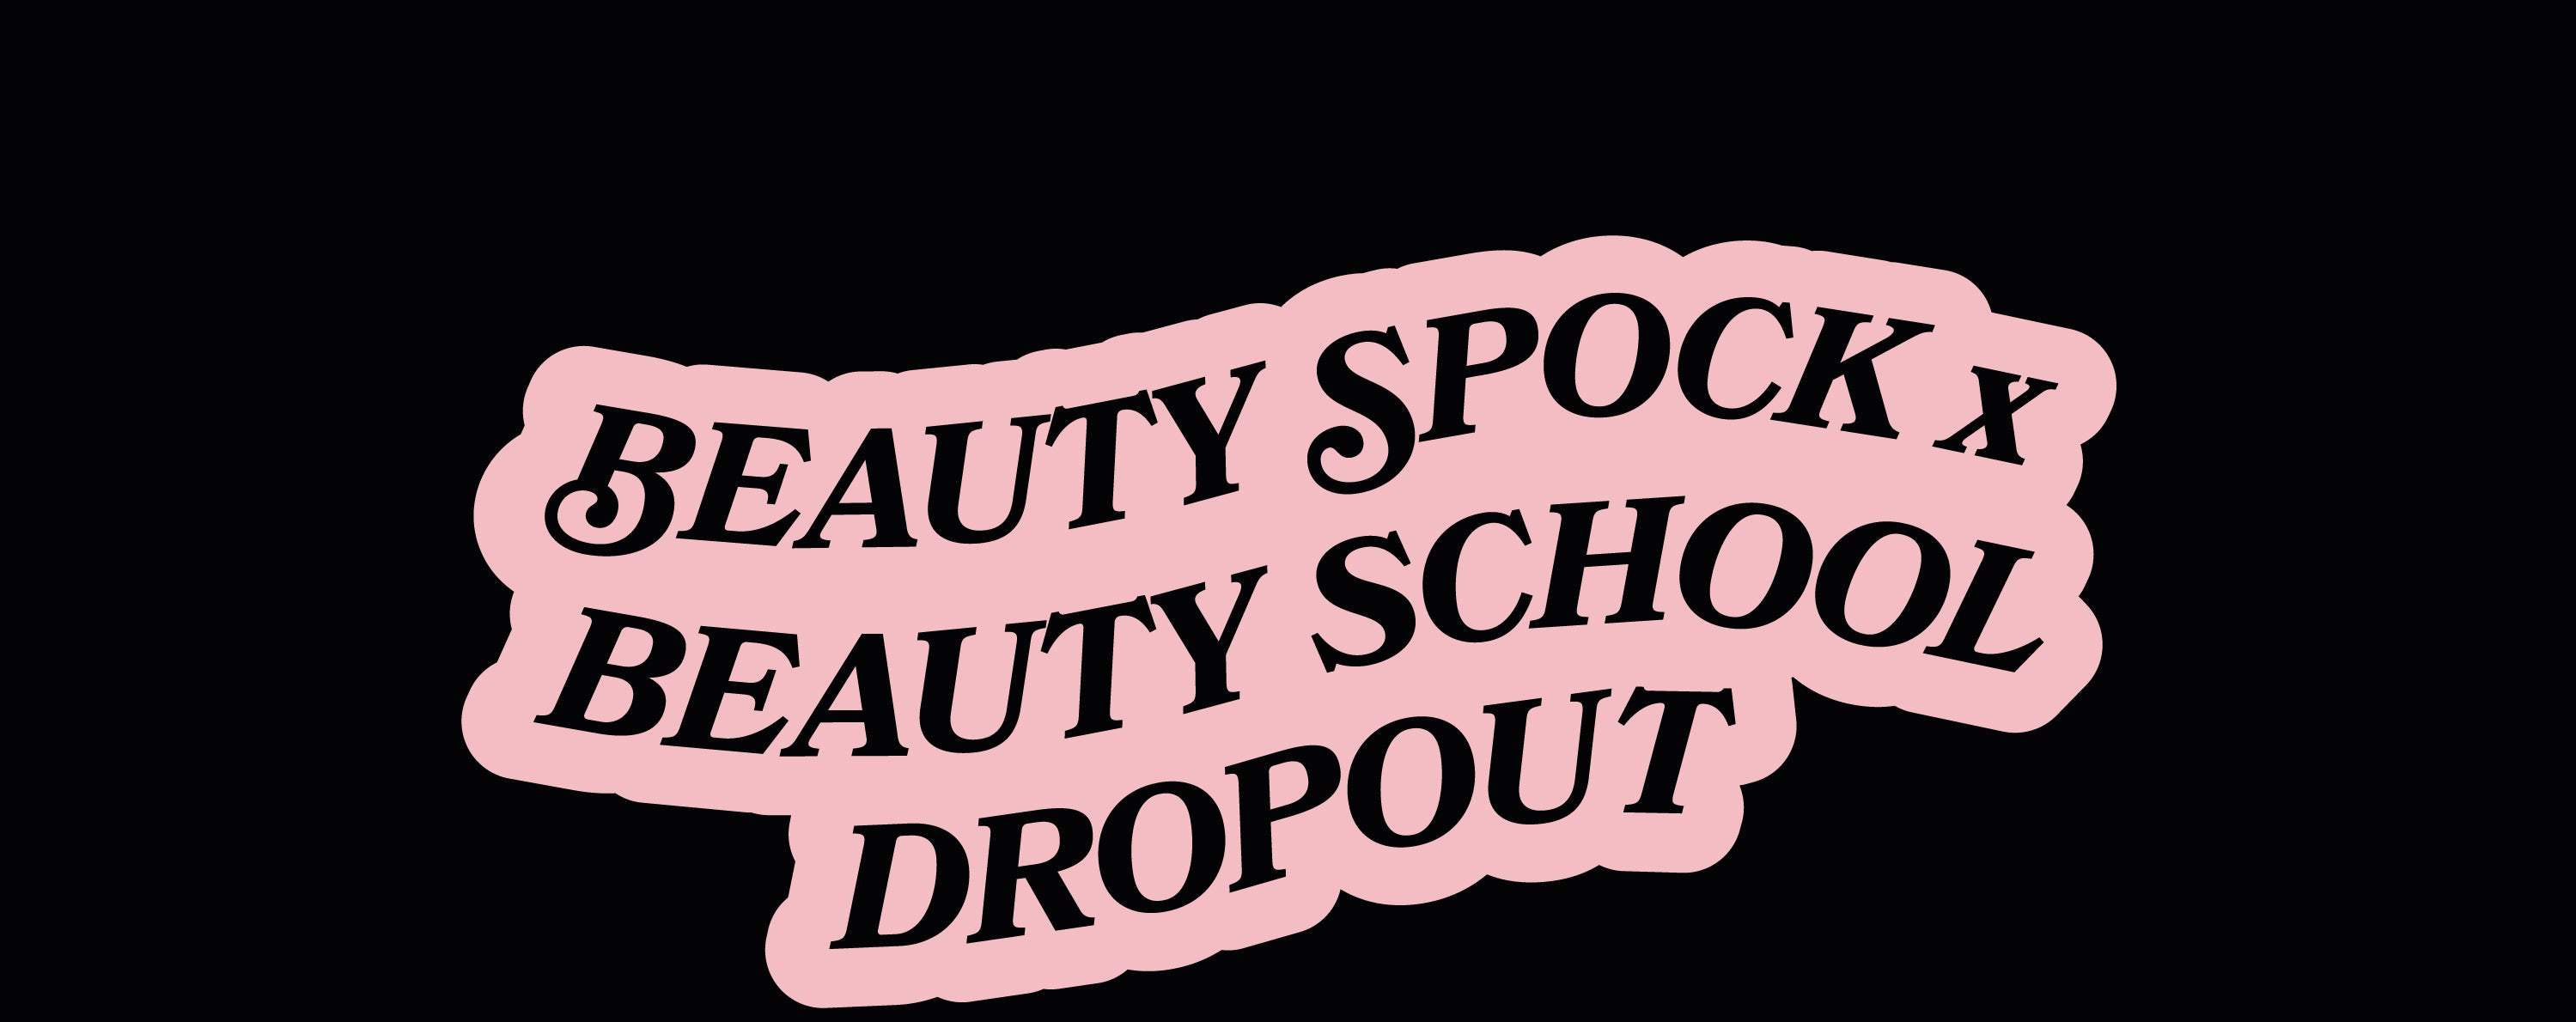 Beauty Spock x Beauty School Dropout